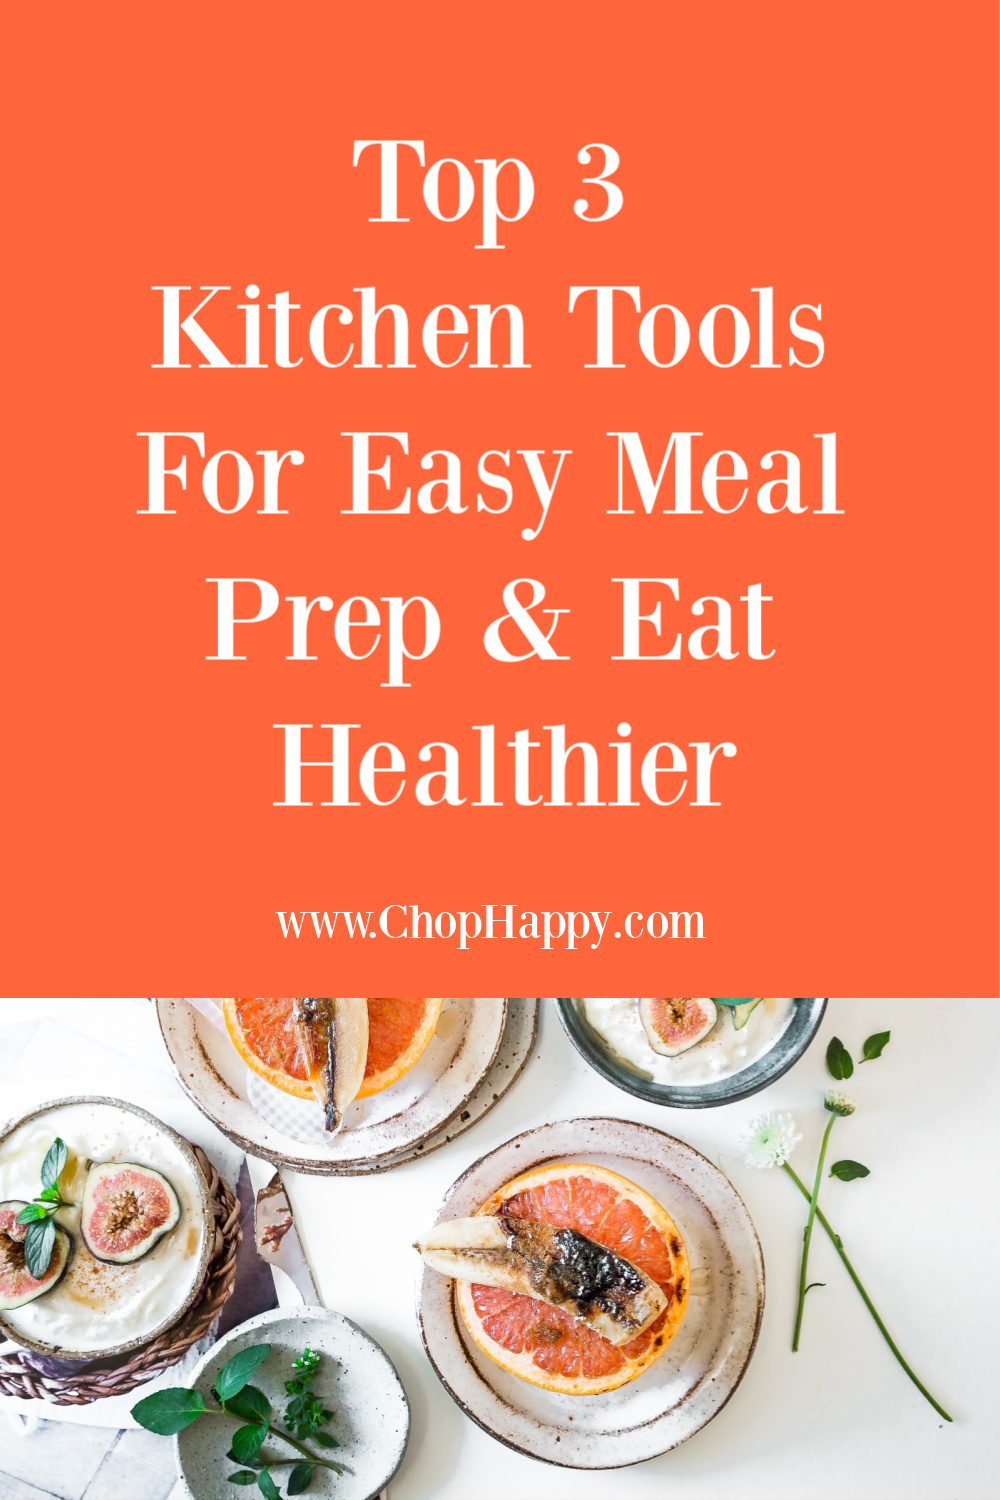 Top 3 Kitchen Tools For Easy Meal Prep & Eat Healthier. Meal prep helps busy moms get dinner on the table and have time for themselves. Happy Cooking! #mealprep #dinnerideas